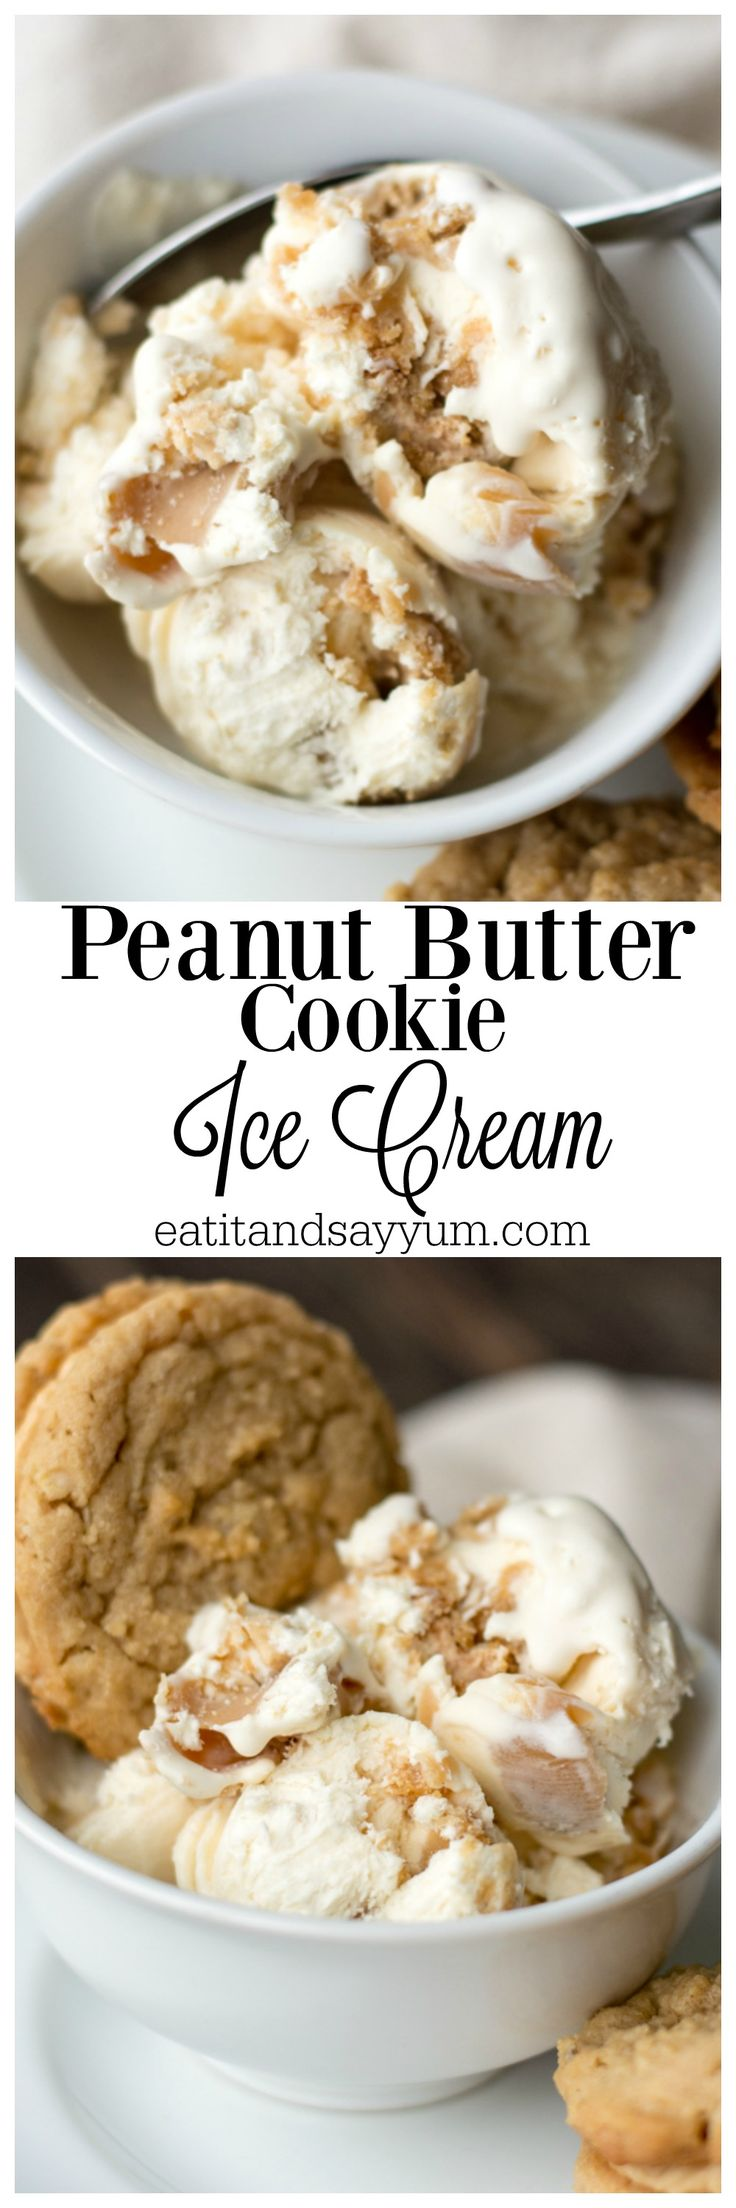 Peanut Butter Cookie Ice Cream- made with delicious cookies and peanut butter fudge sauce!